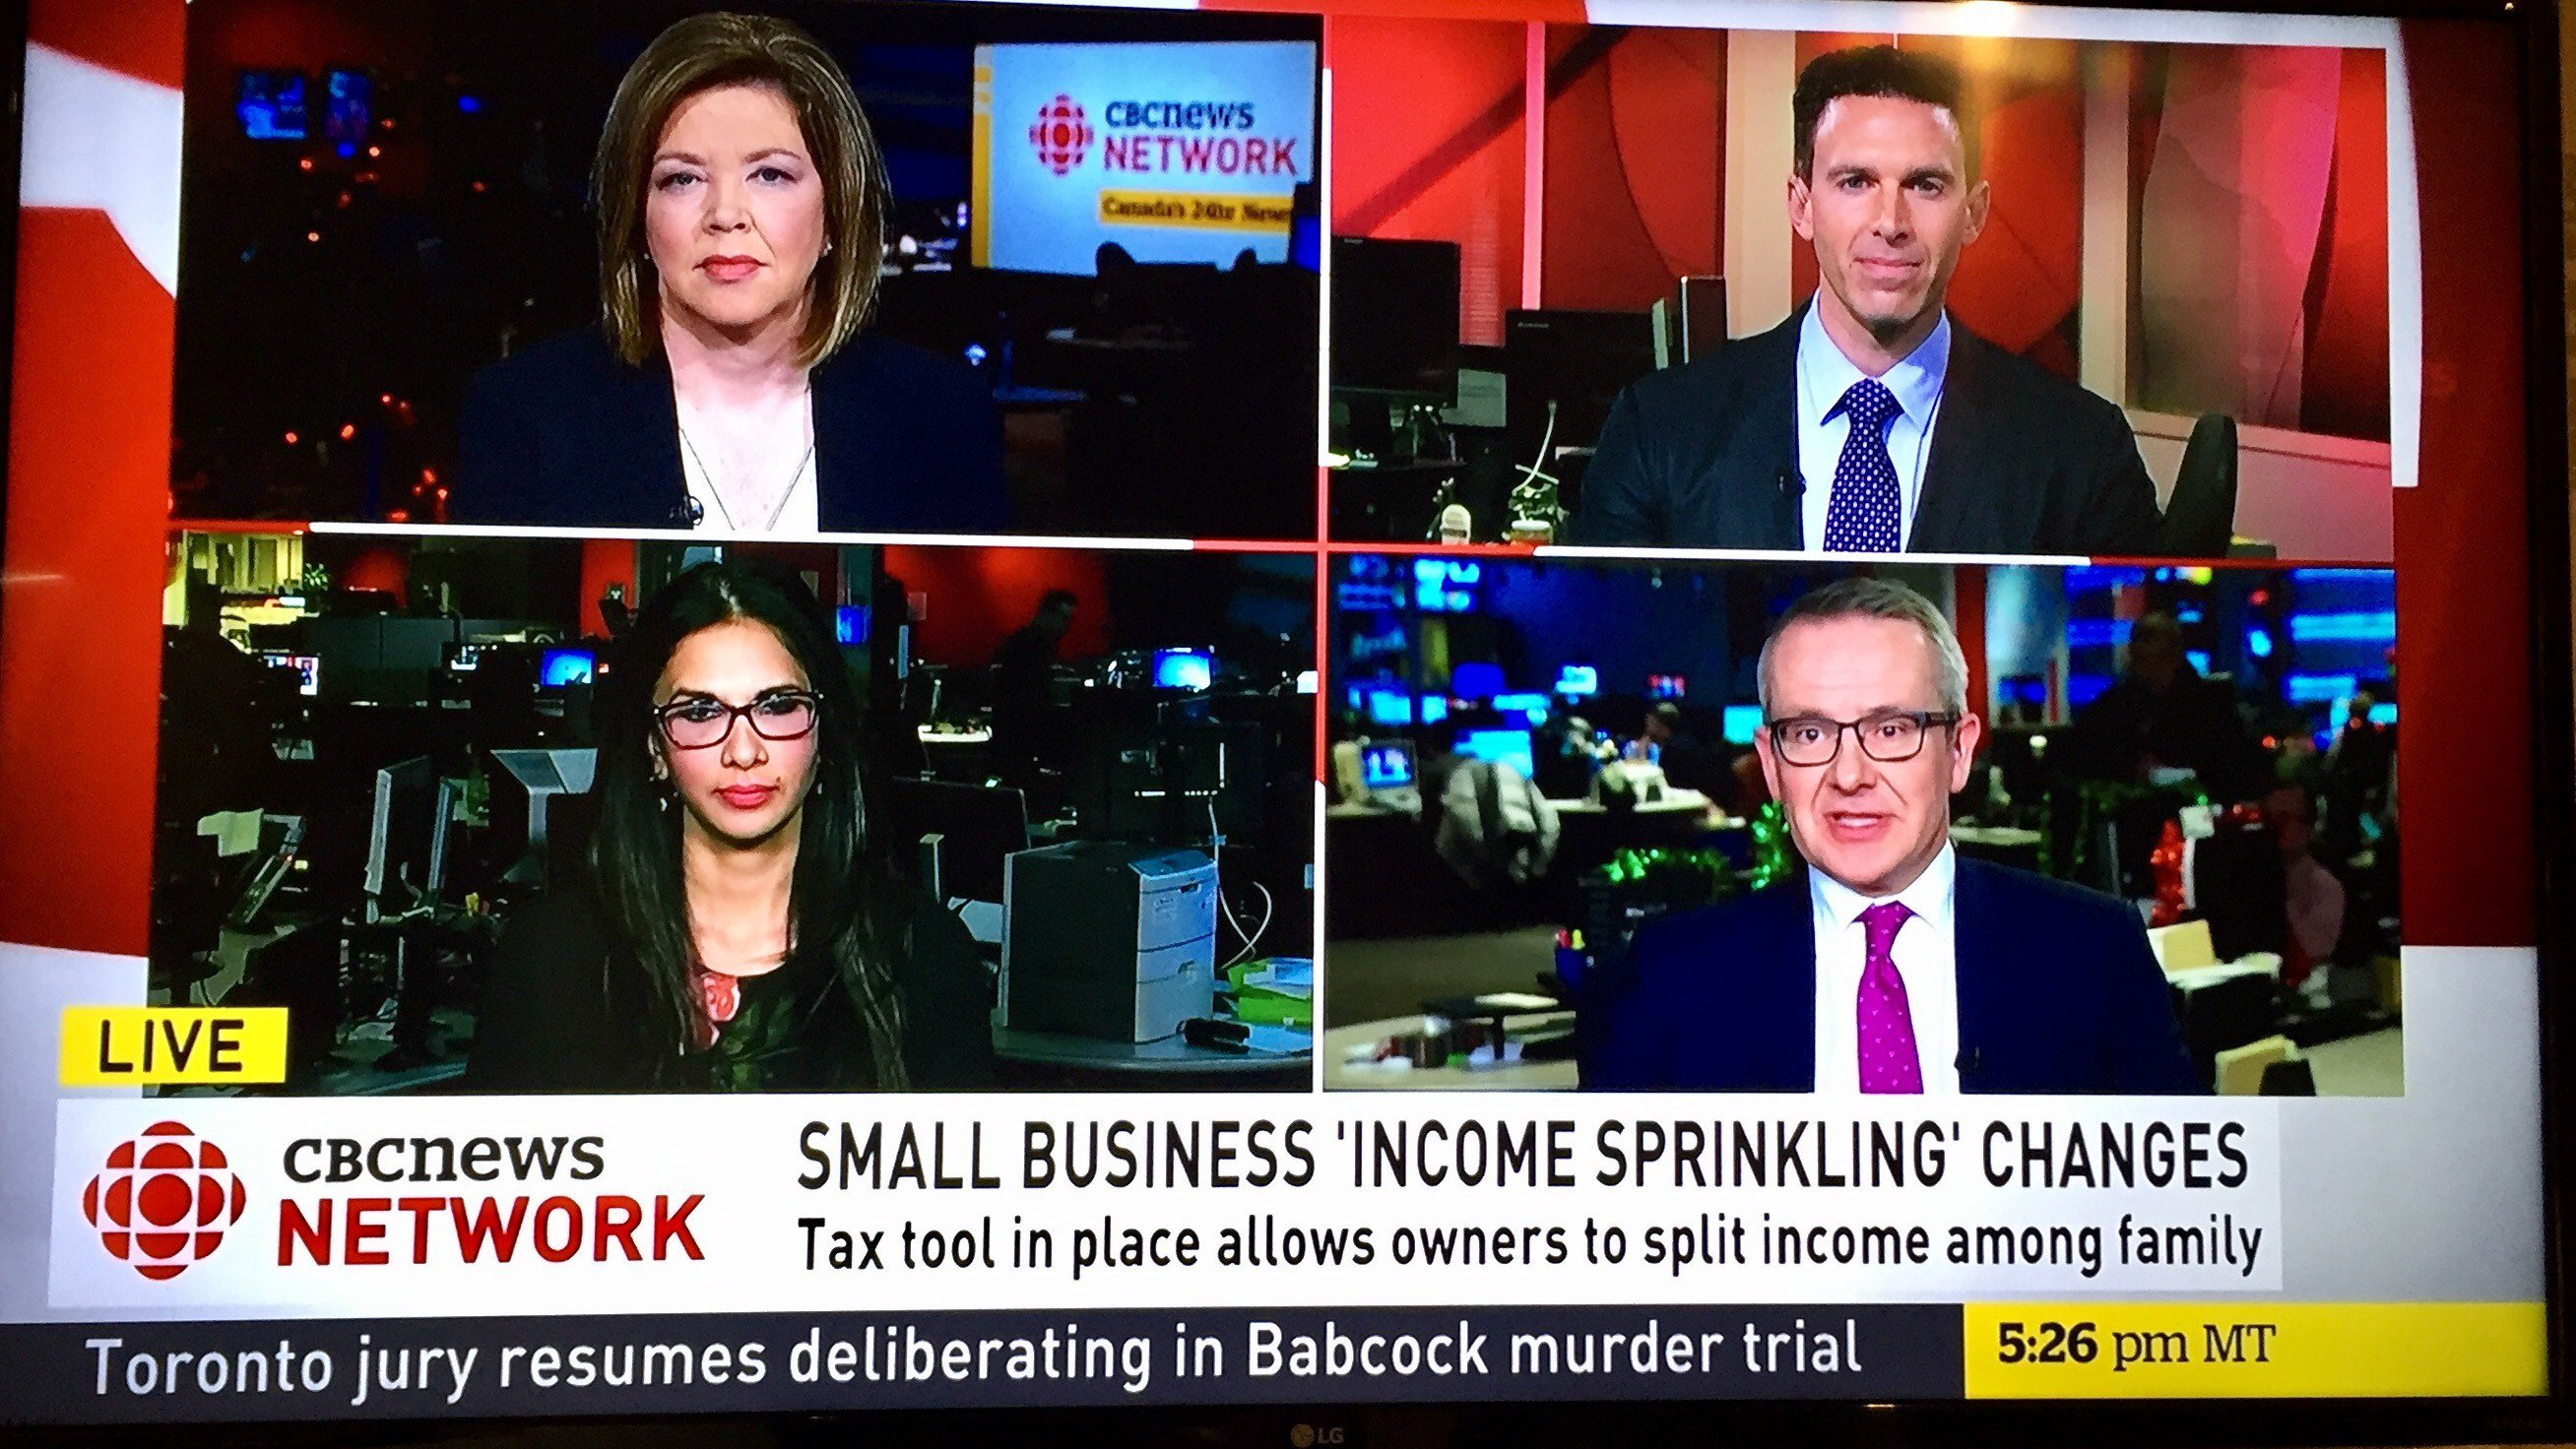 Muneeza on CBC with Carole MacNeil discussing income sprinkling and the Federal Governments changes as they affect small businesses.